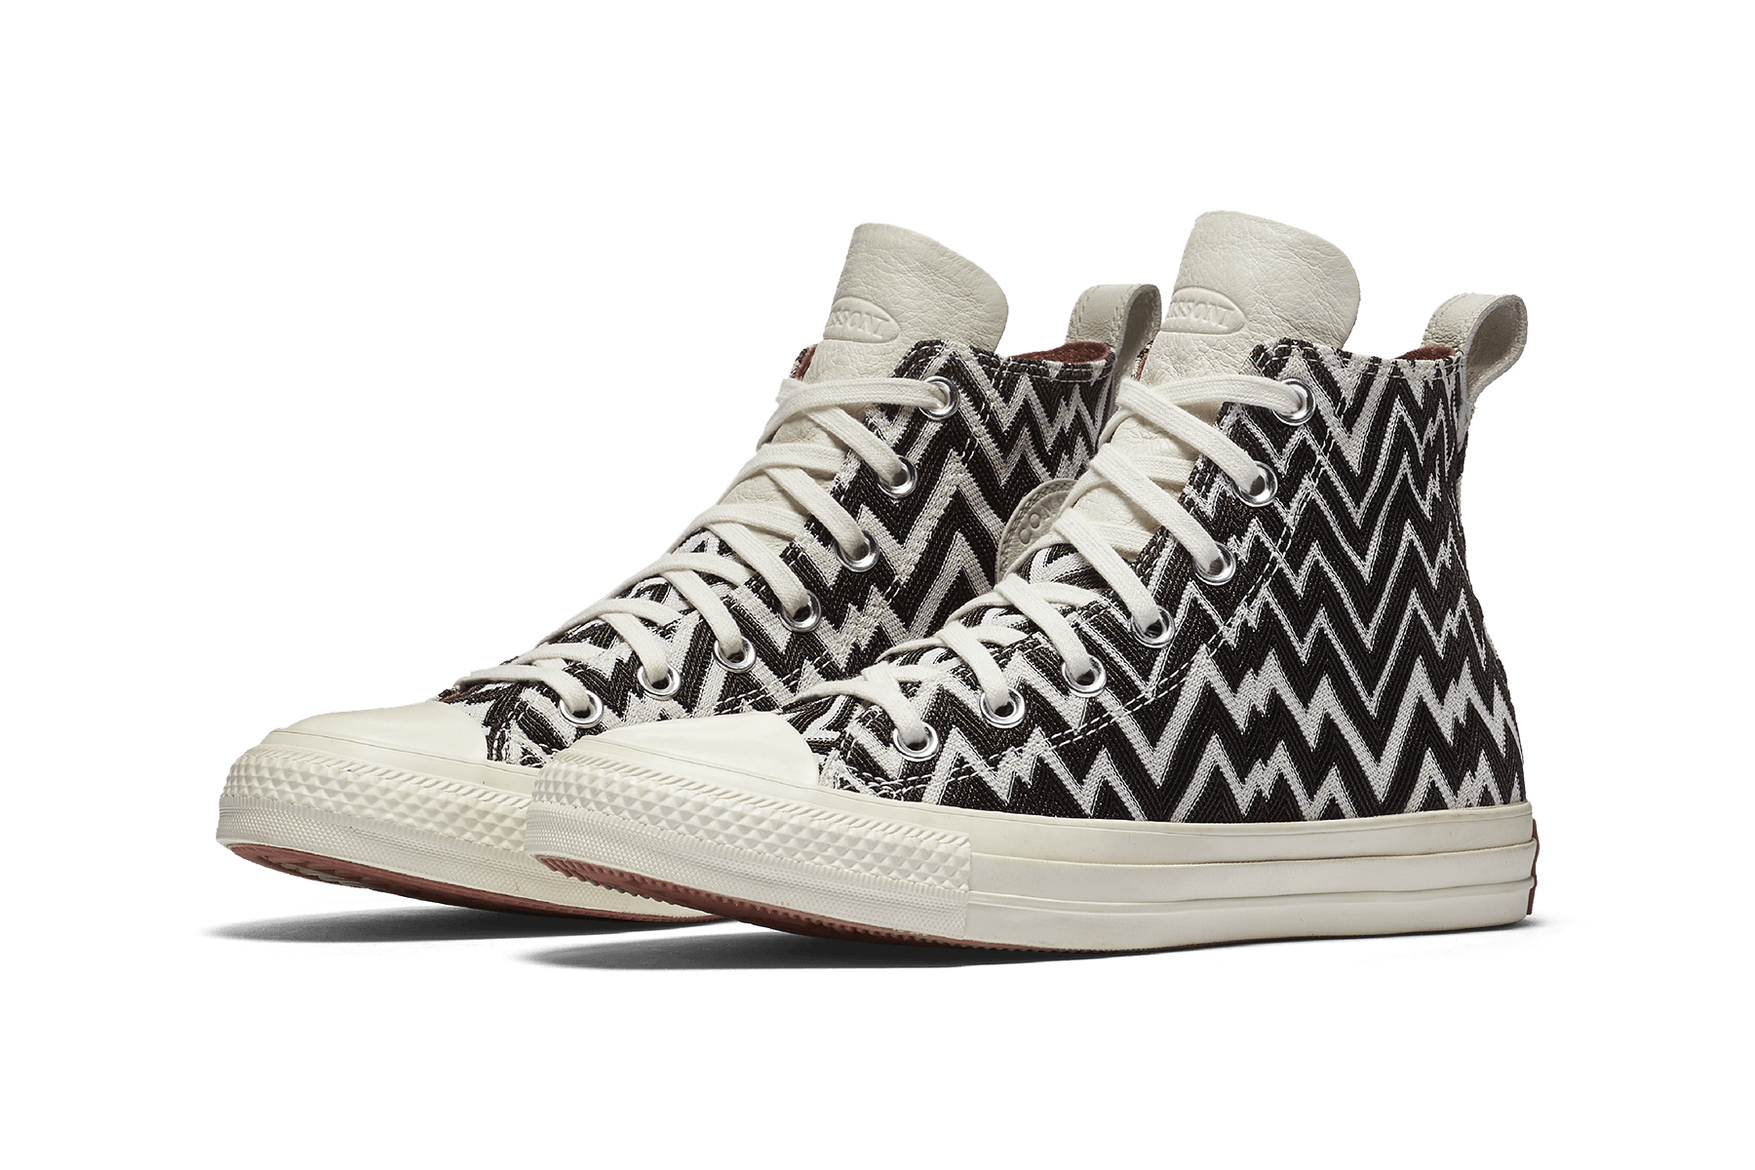 converse-missoni-chuck-taylor-all-star-high-top-2.png